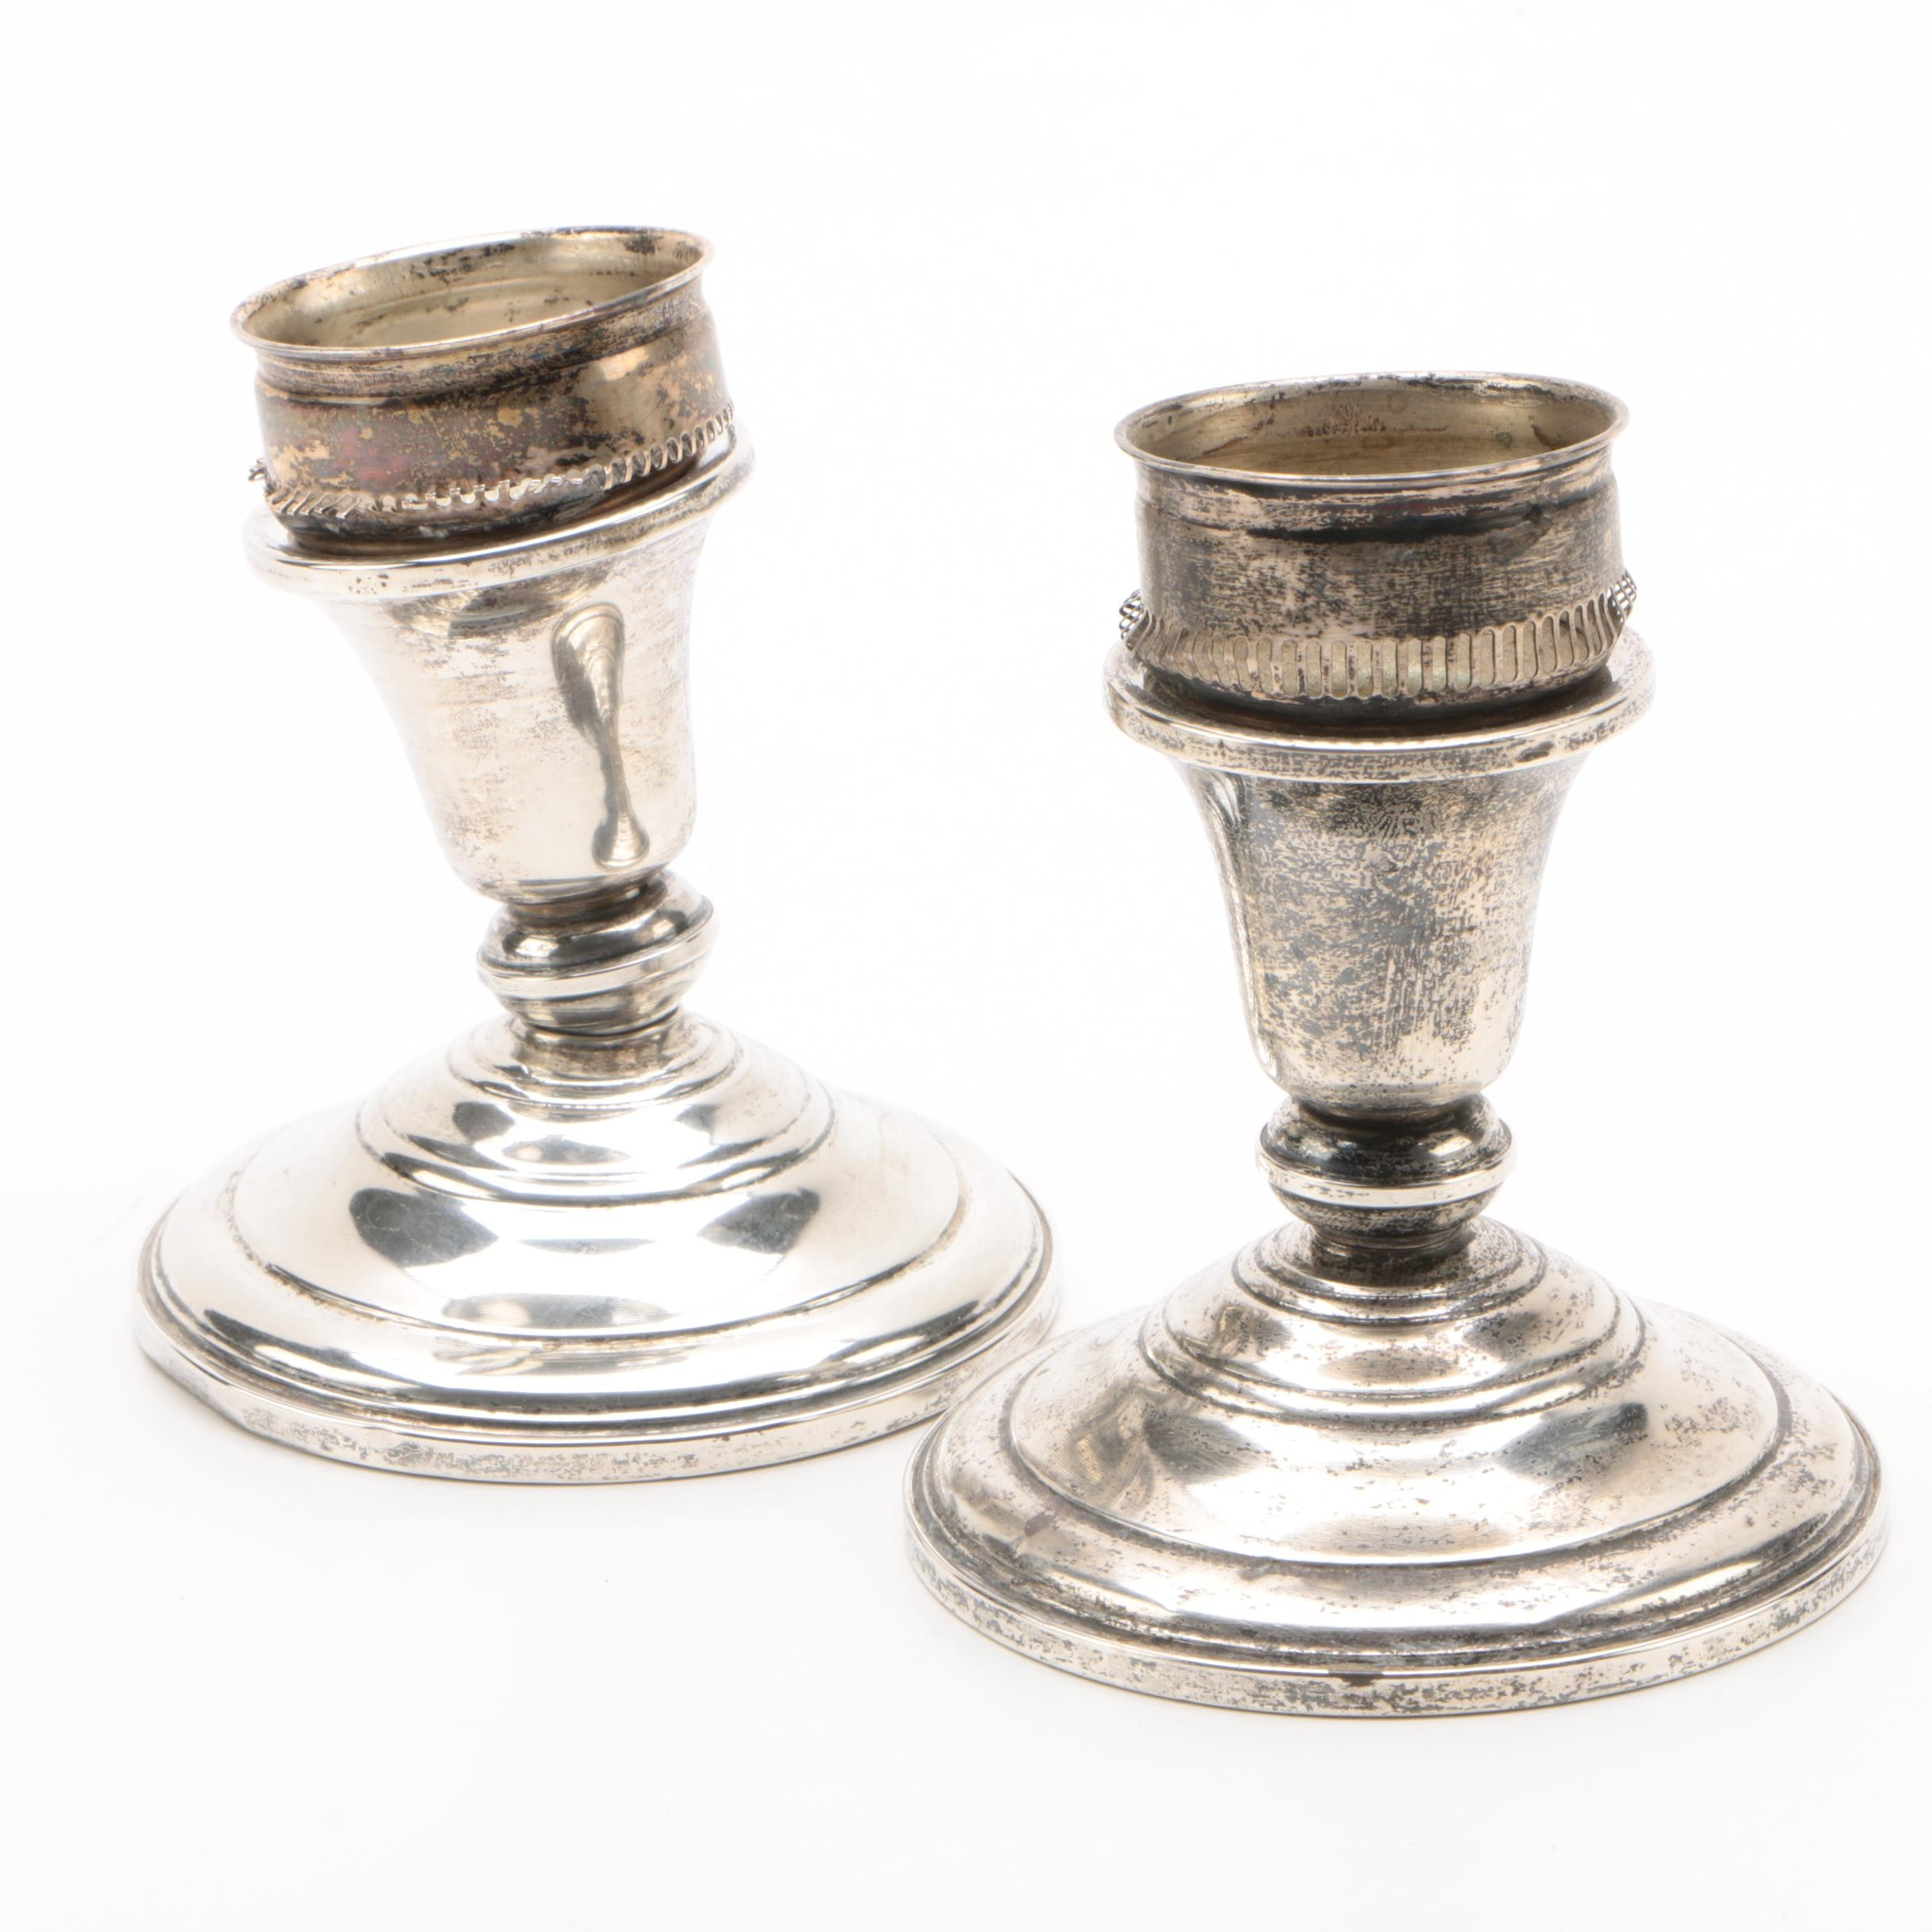 Frank M. Whiting & Co. Weighted Sterling Candle Holders, Early 20th Century